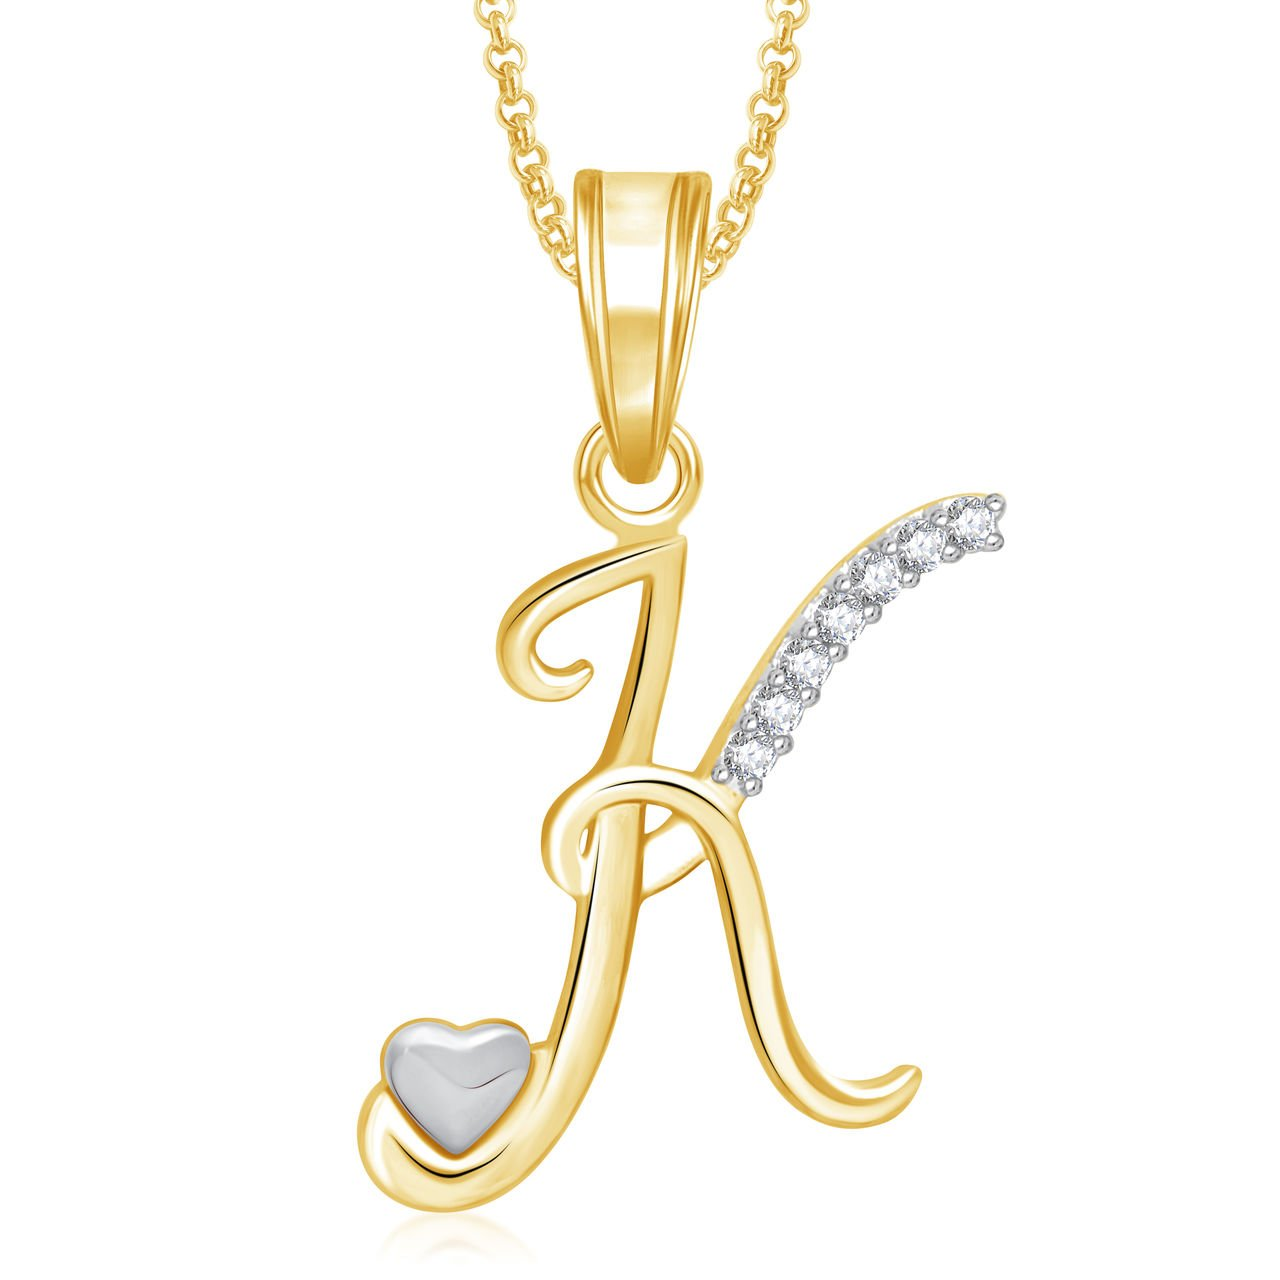 Buy Meenaz Jewellery Gold Plated K Letter Pendant For Girls